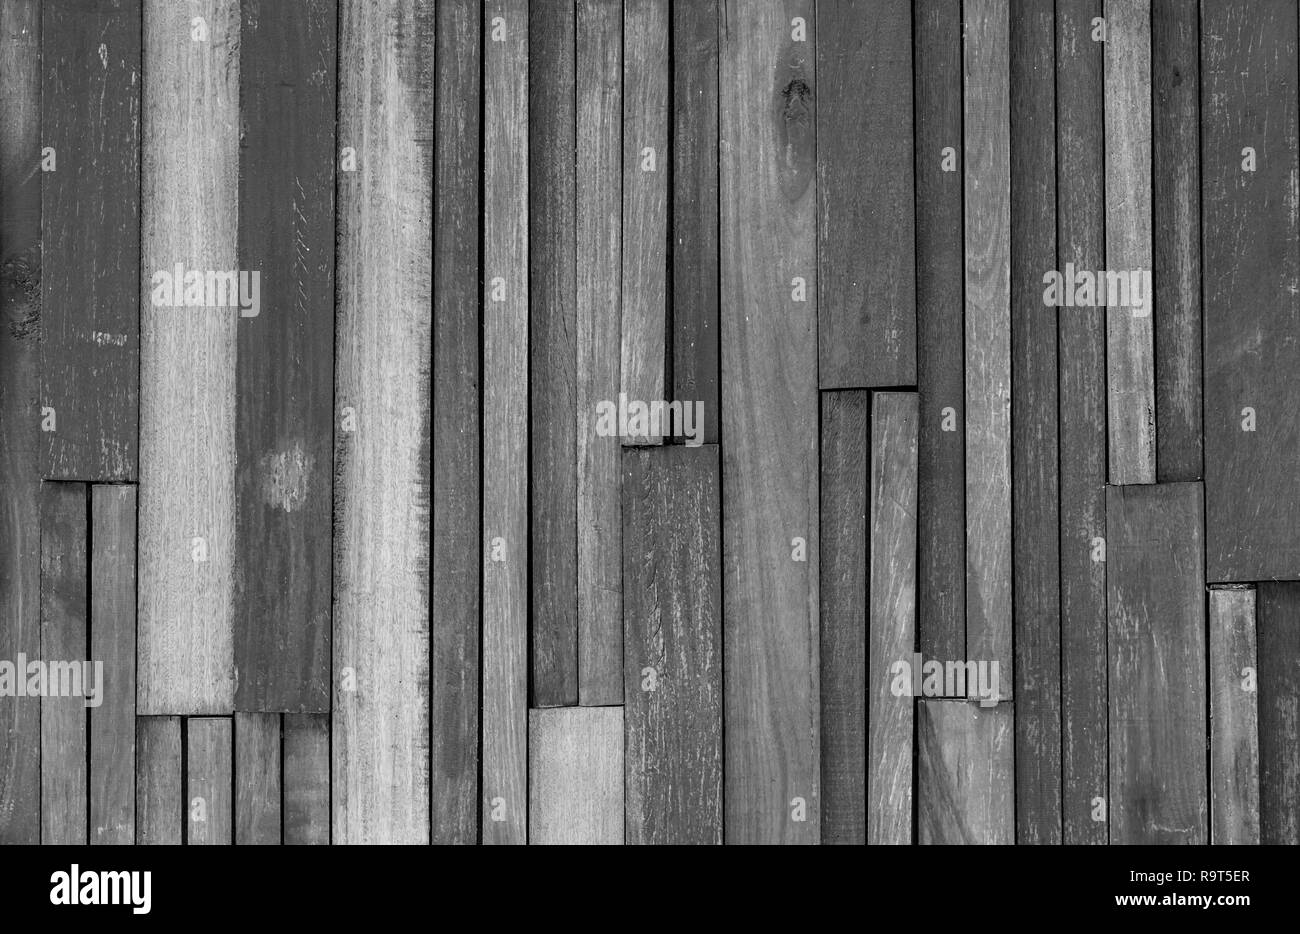 Grey wood texture background. Wood backdrop. Wooden planks. Old panel abstract background. Gray background for Sad, death, grieving, and lament. Backg - Stock Image